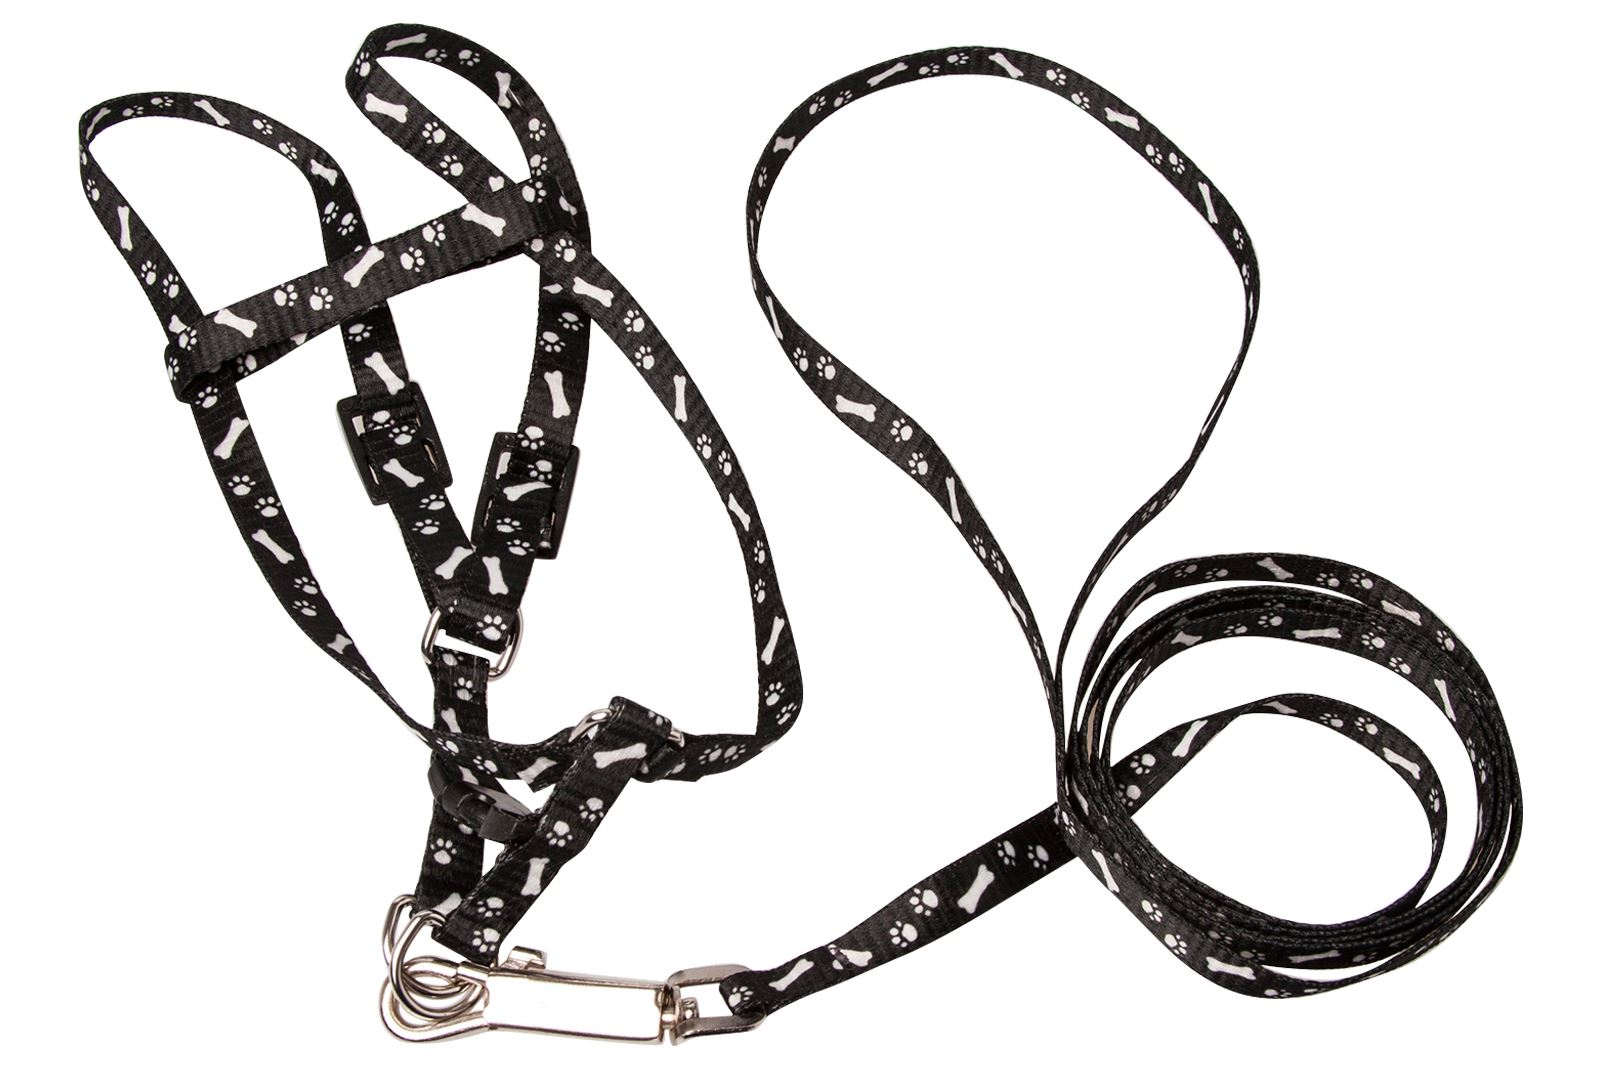 Small Dog Harness Amp Lead Puppy Harness Amp Lead Dog